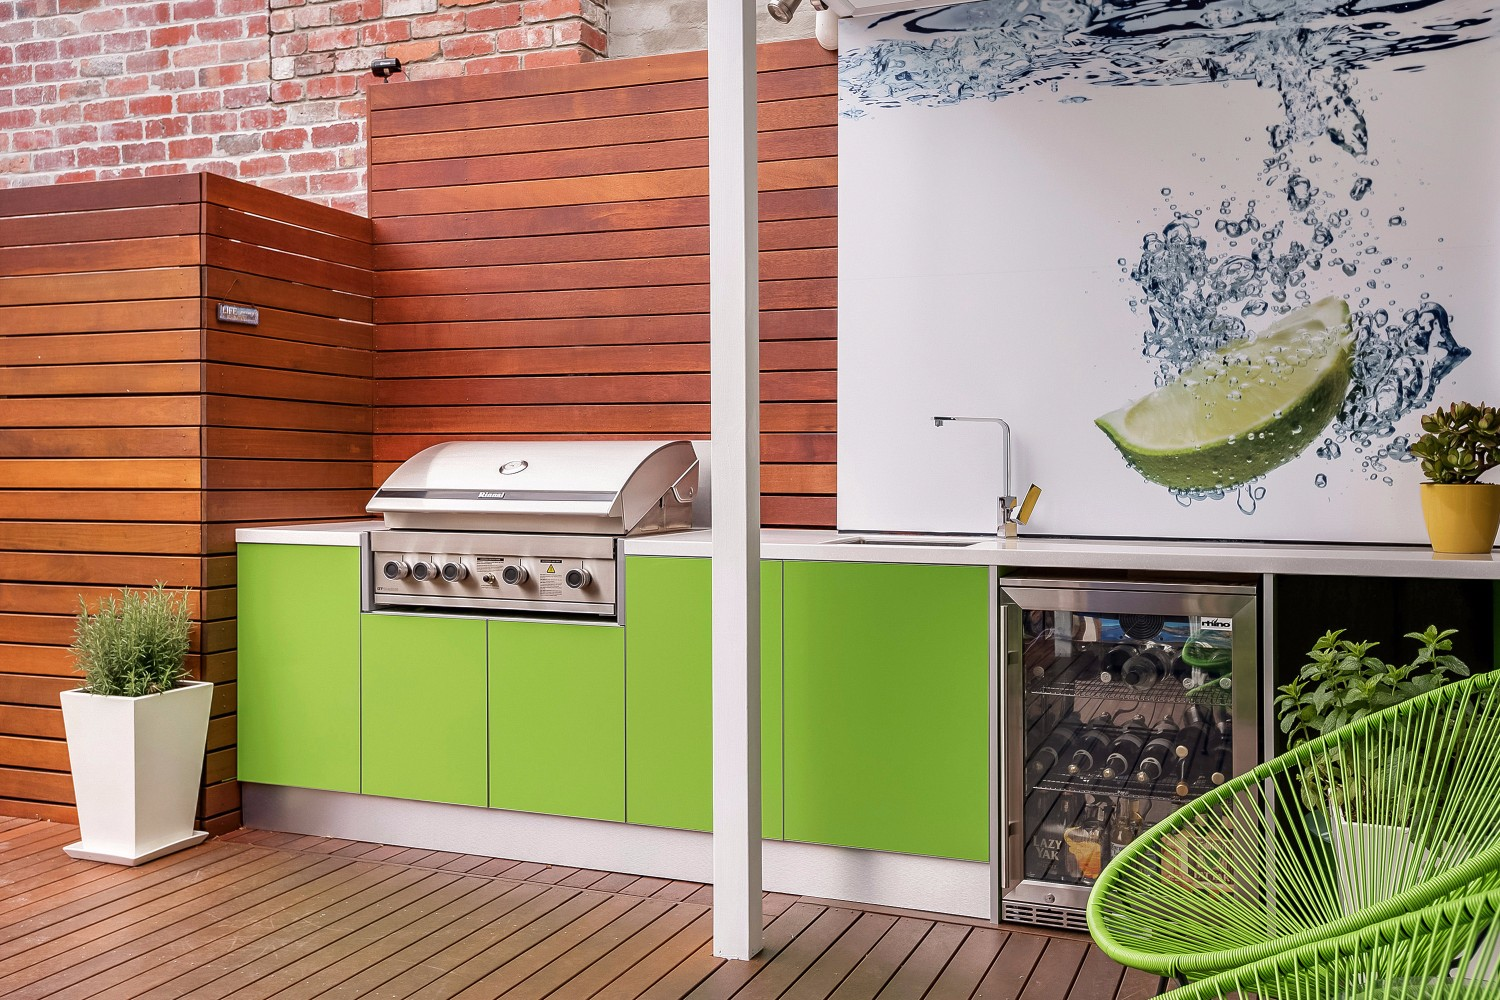 green machine a colourful and creative outdoor kitchen